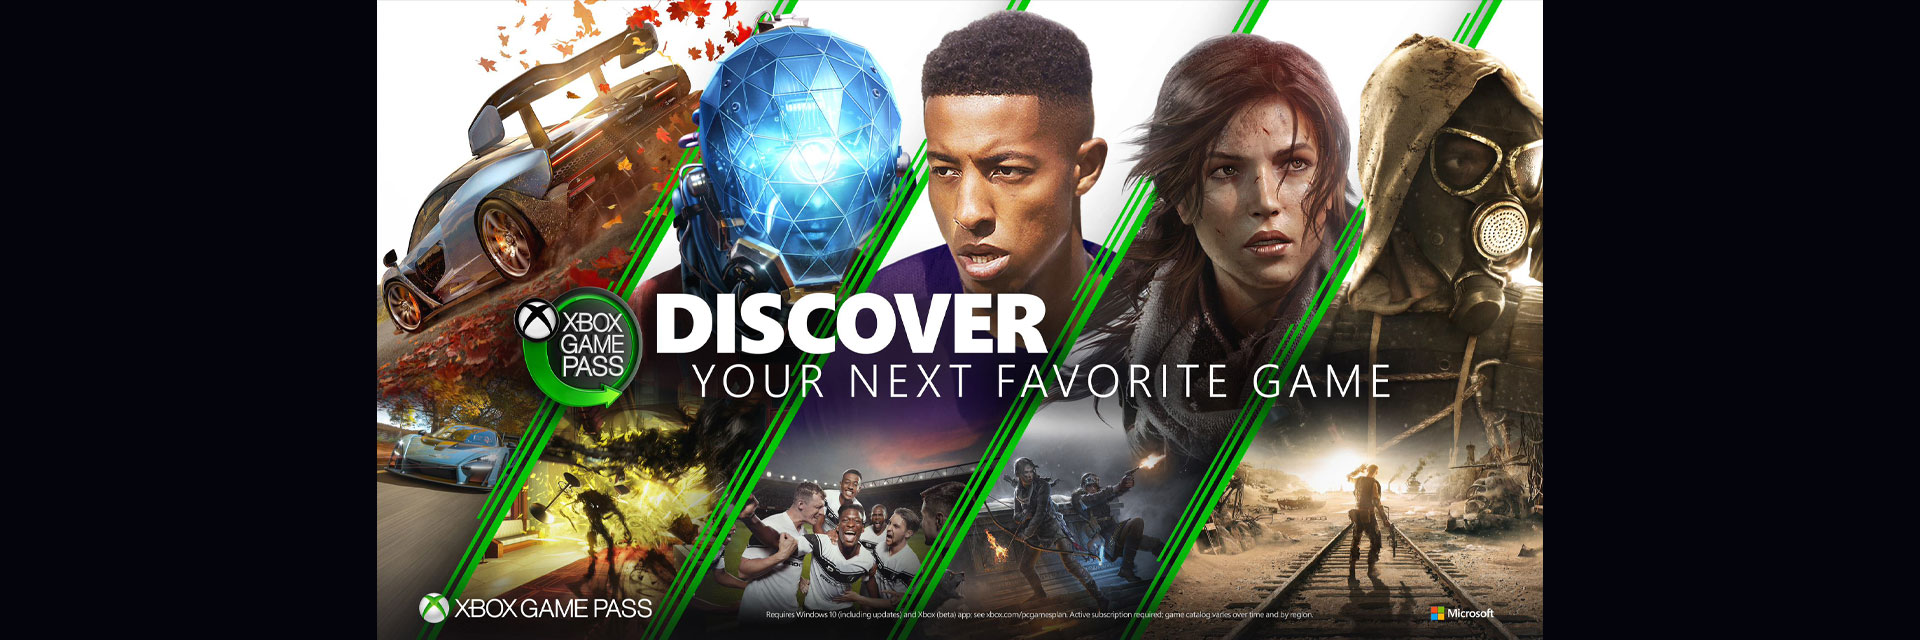 msi xbox game pass main banner